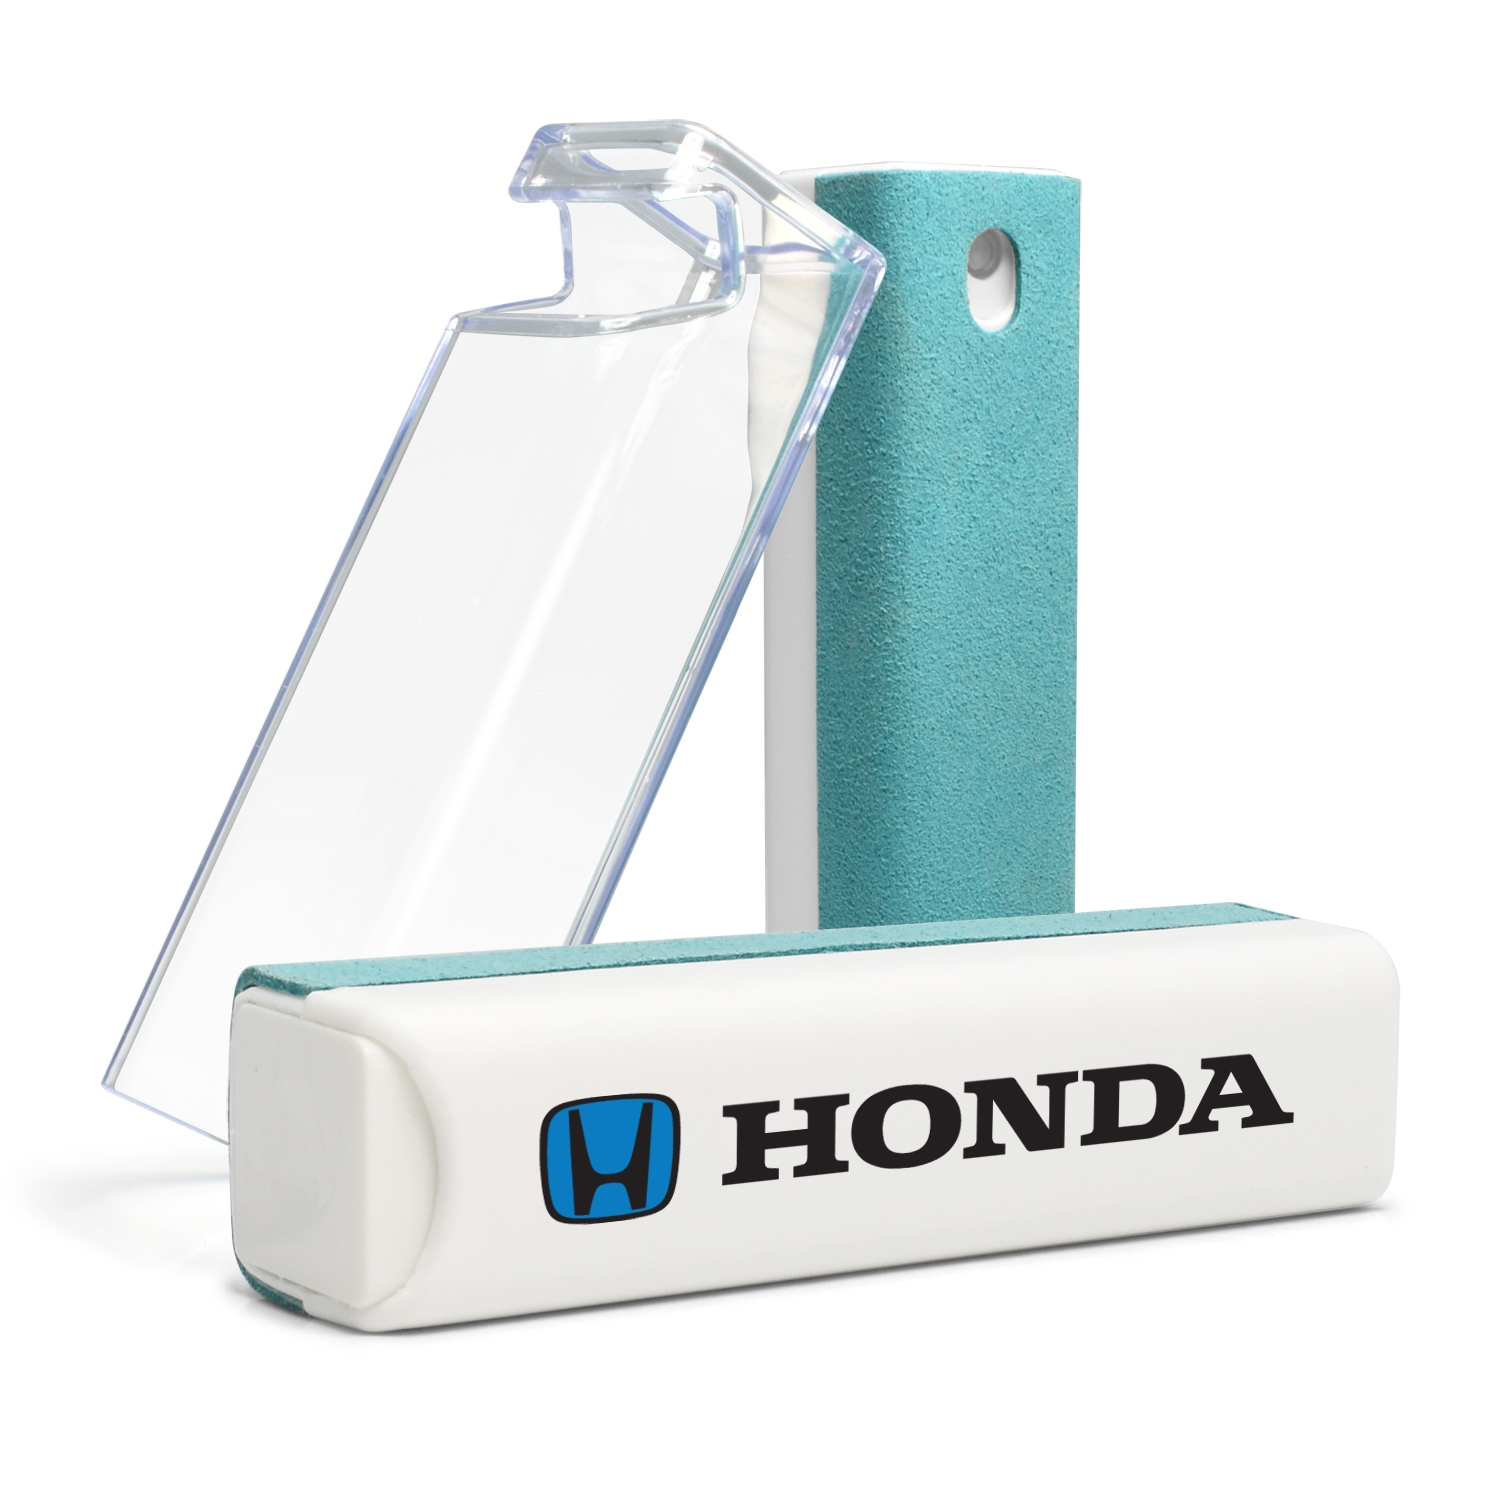 Honda Logo in Blue All-in-One Blue Wipe Navigation Screen Cleaner with Clear Cell Phone Stand